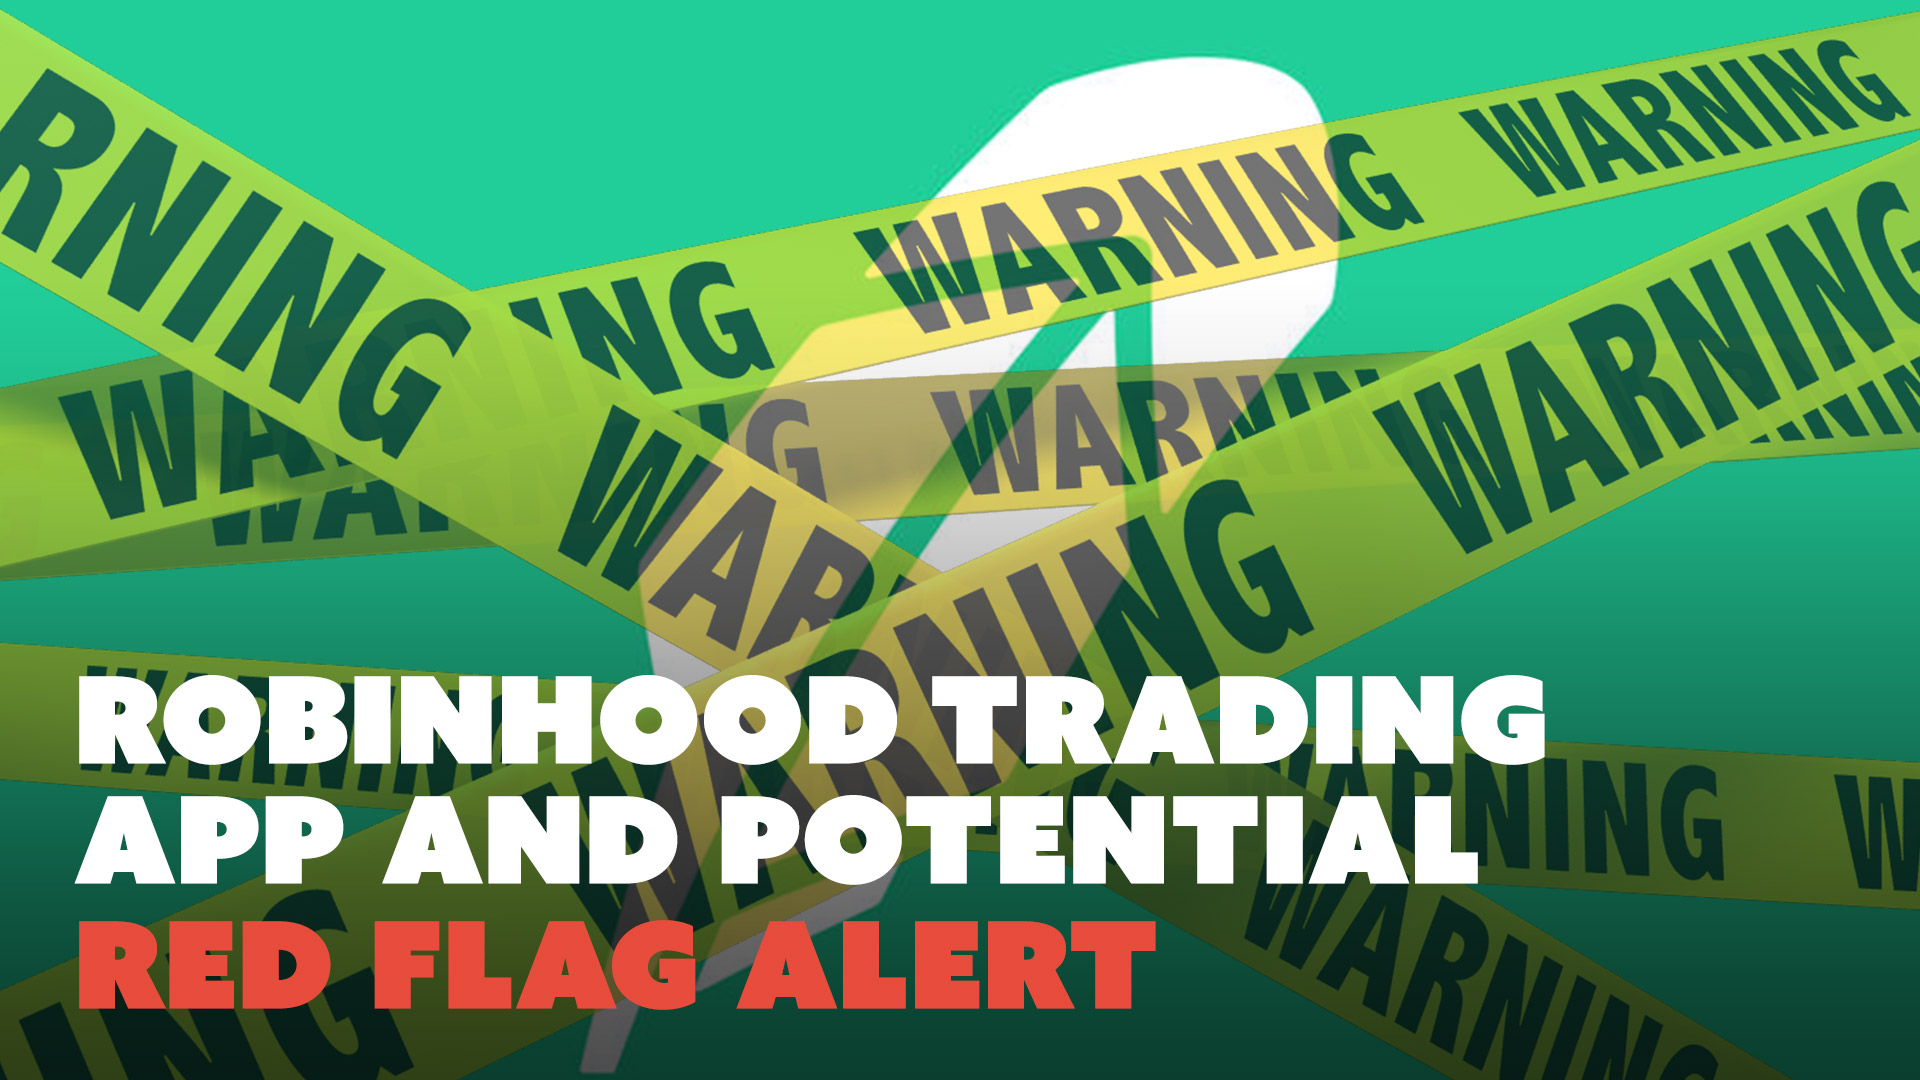 Robinhood Trading App and Potential Red Flag Alert